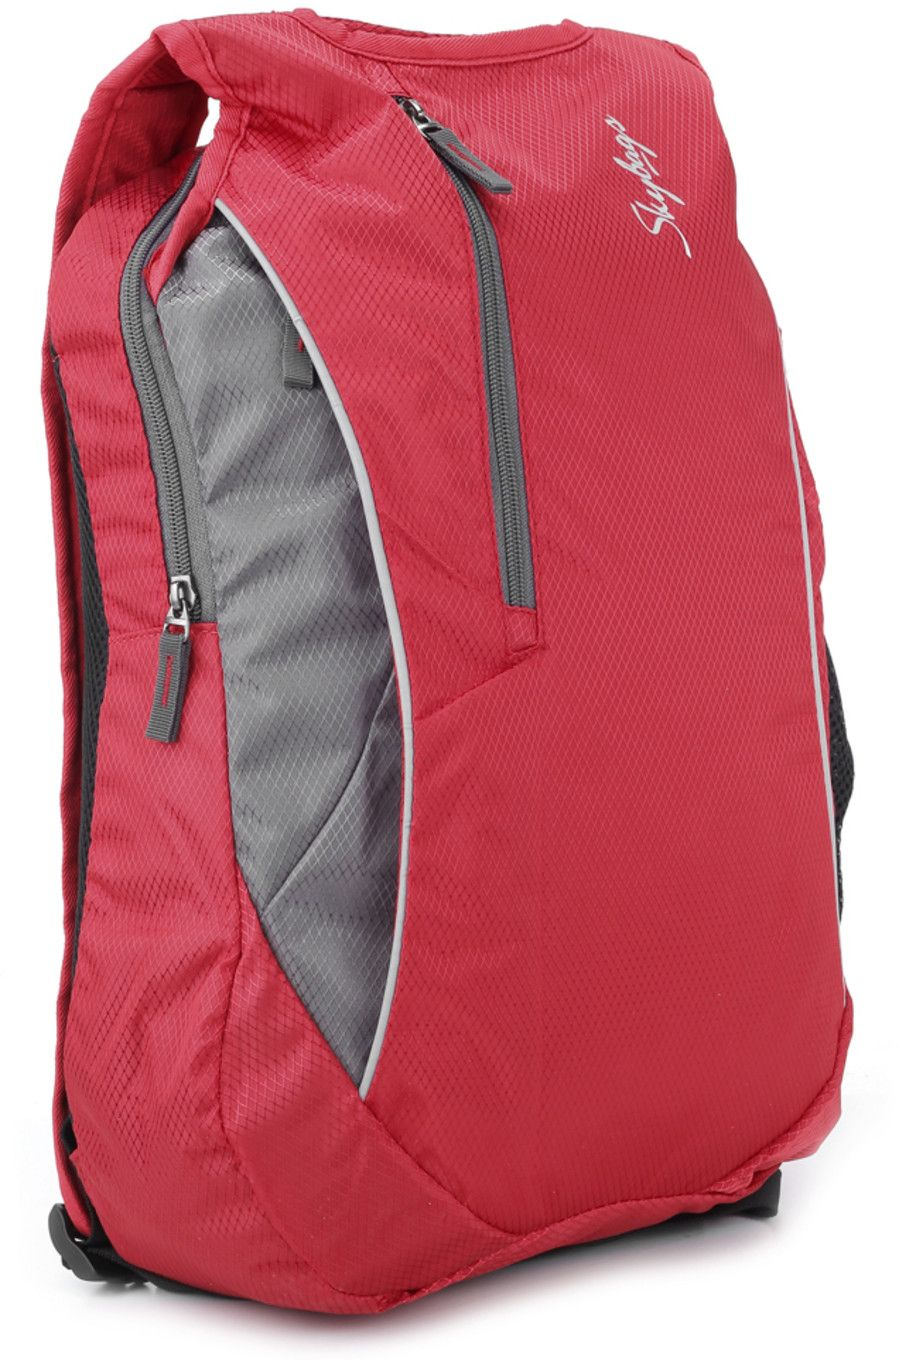 543861228719 nike bags online shopping cheap   OFF52% The Largest Catalog Discounts